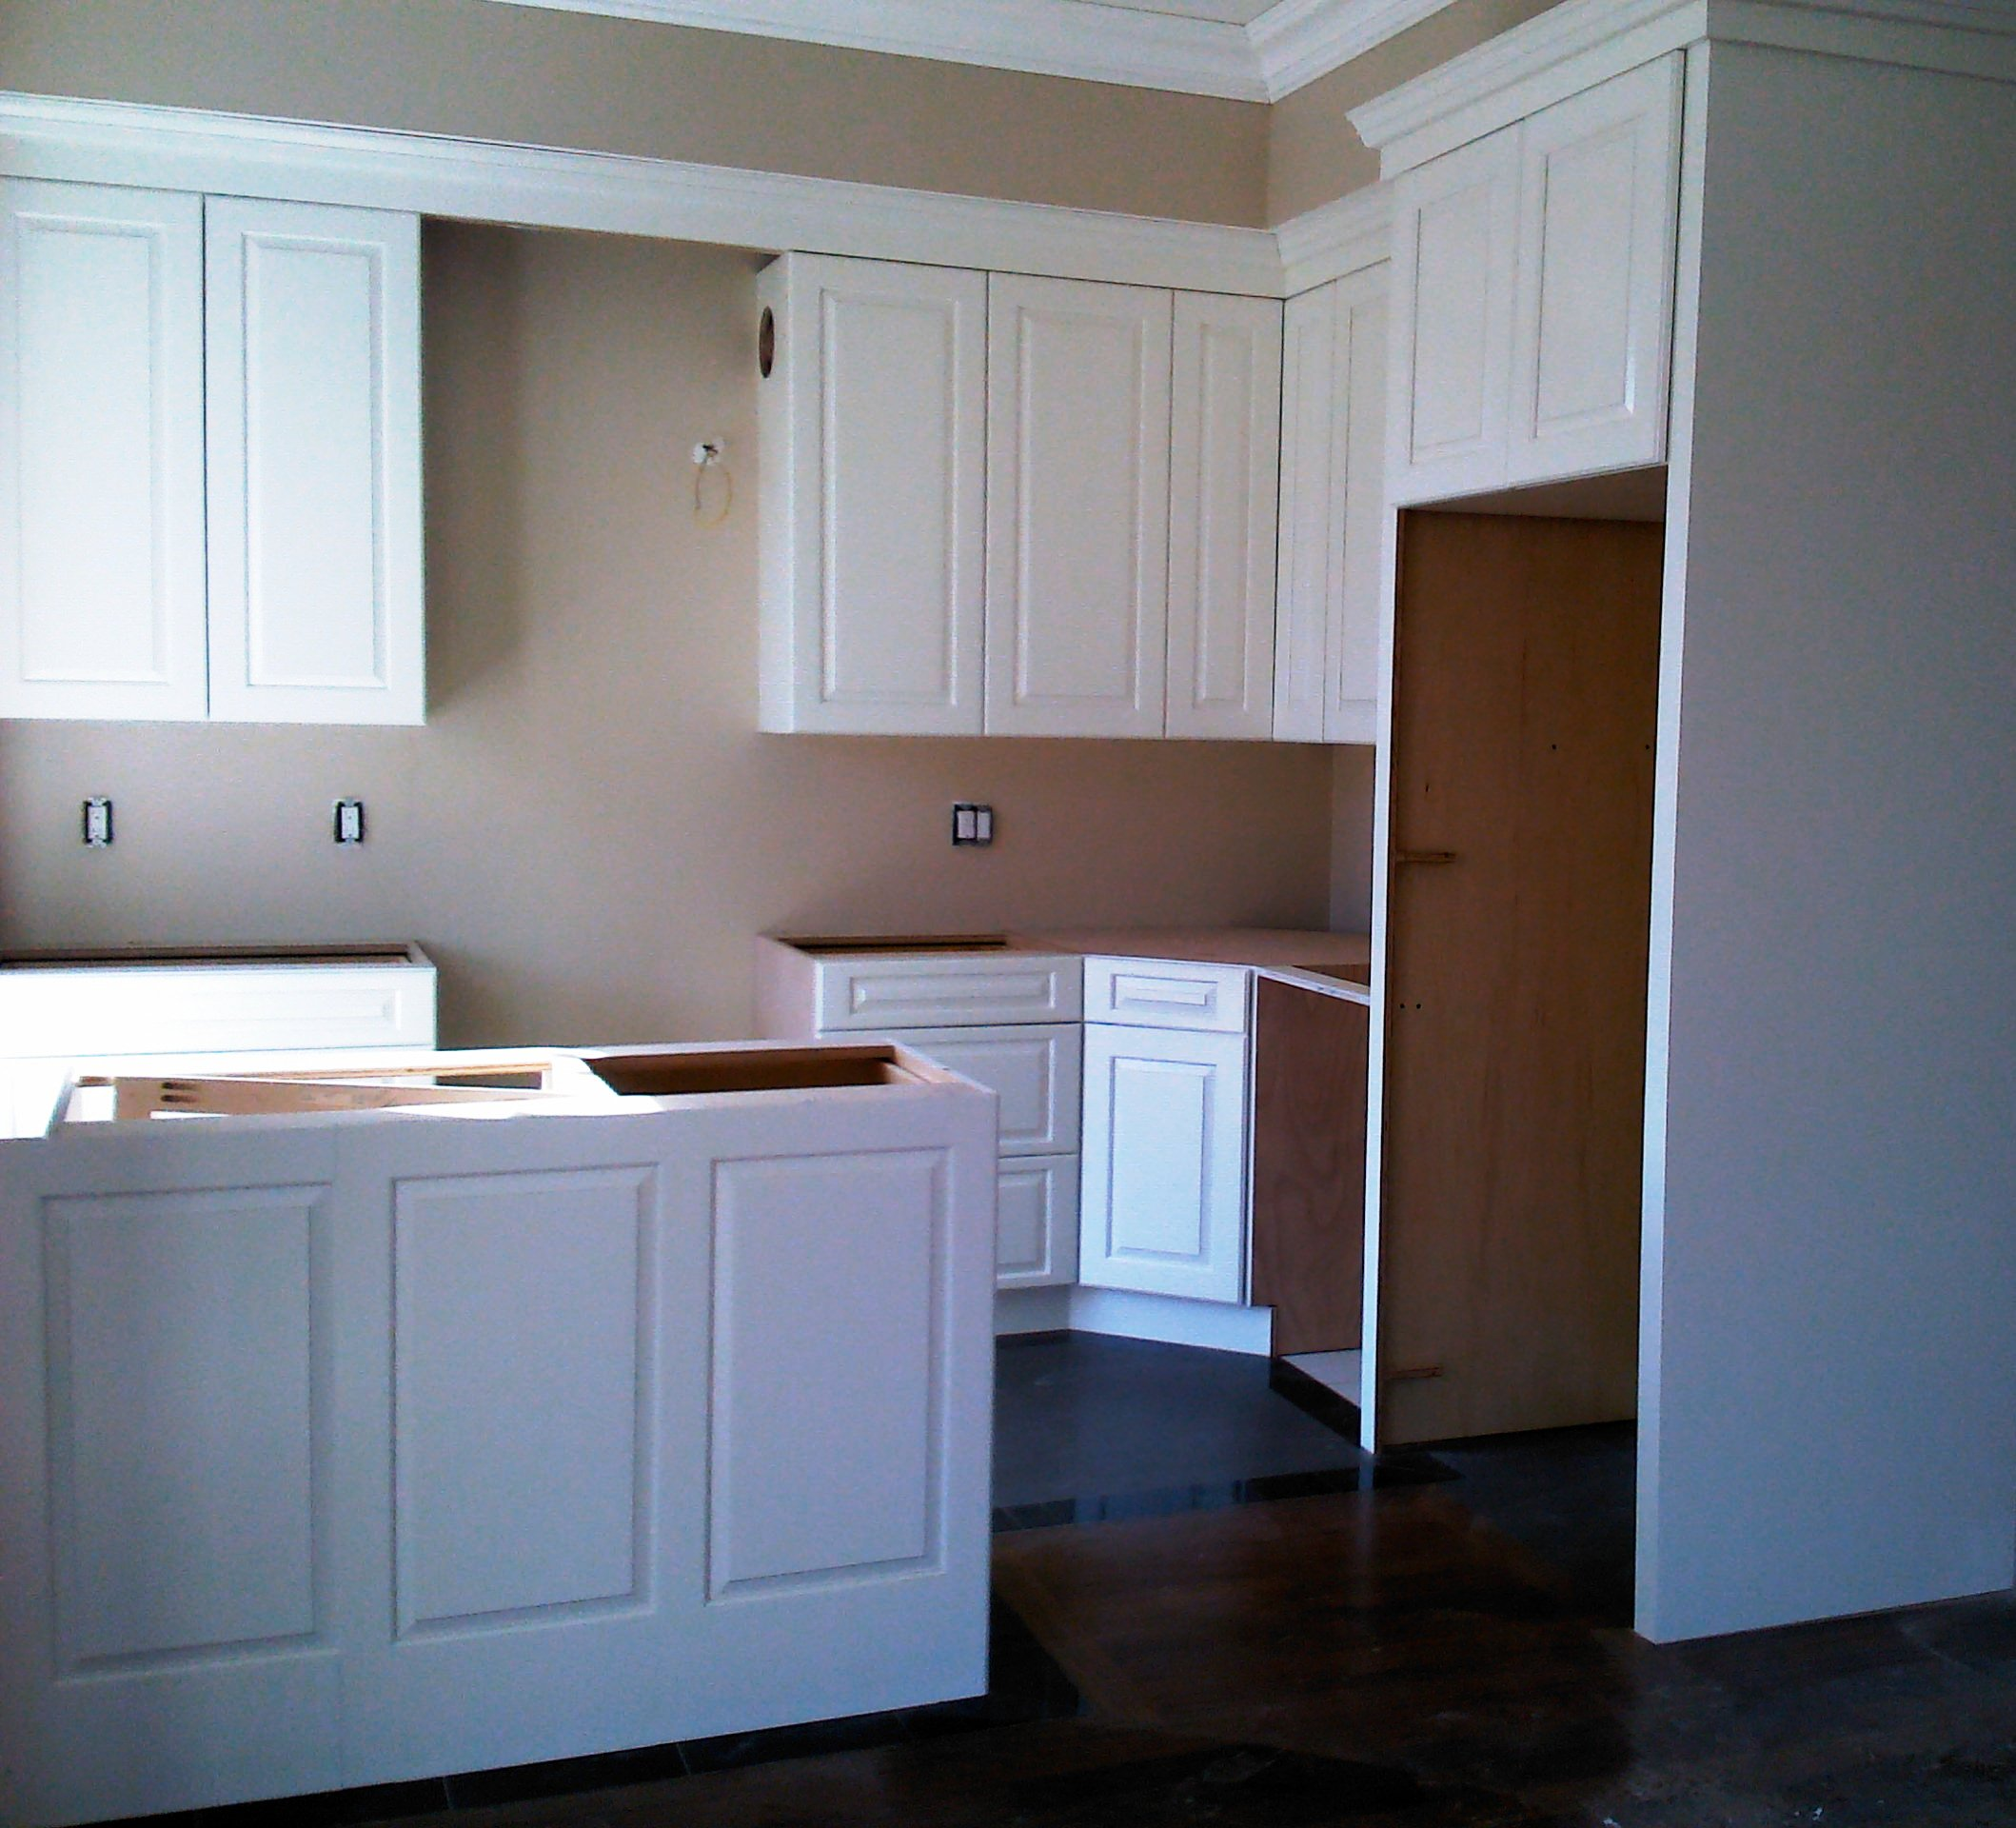 How To Install New Kitchen Cabinets: Kitchen Cabinet Installation